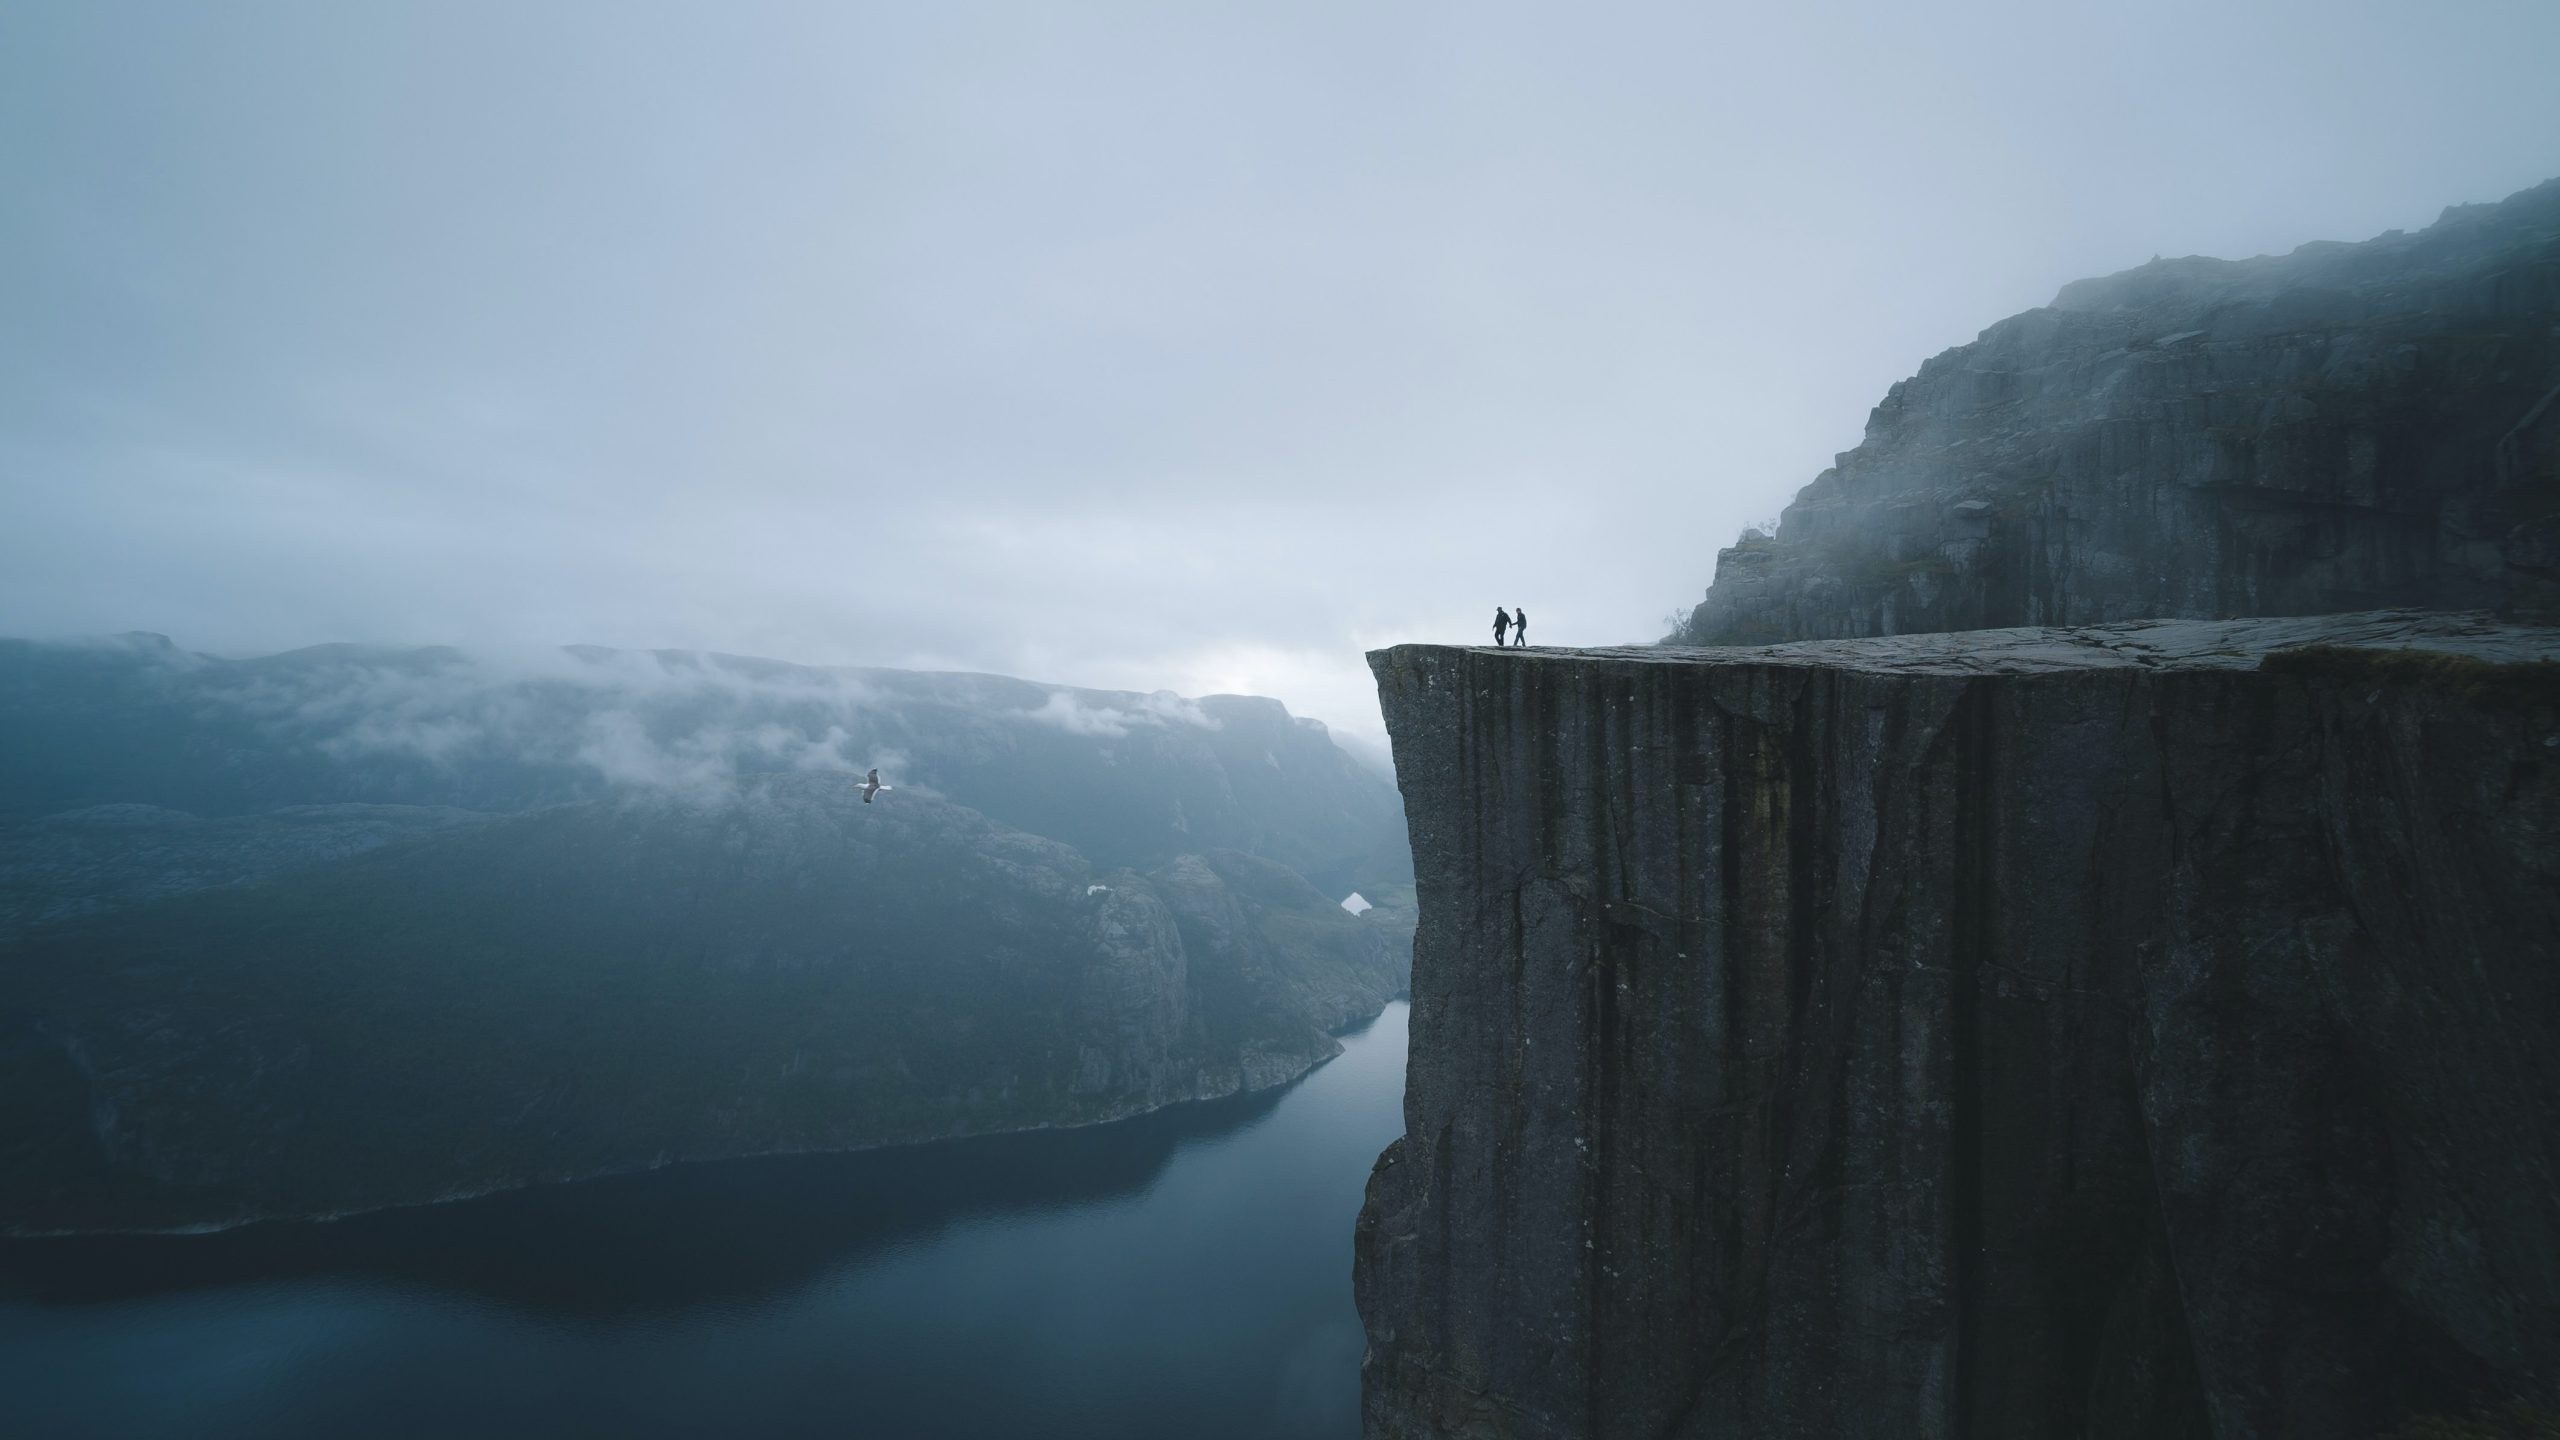 Landscape with cliffs and people on edge. Photo by Valdemaras from Pexels